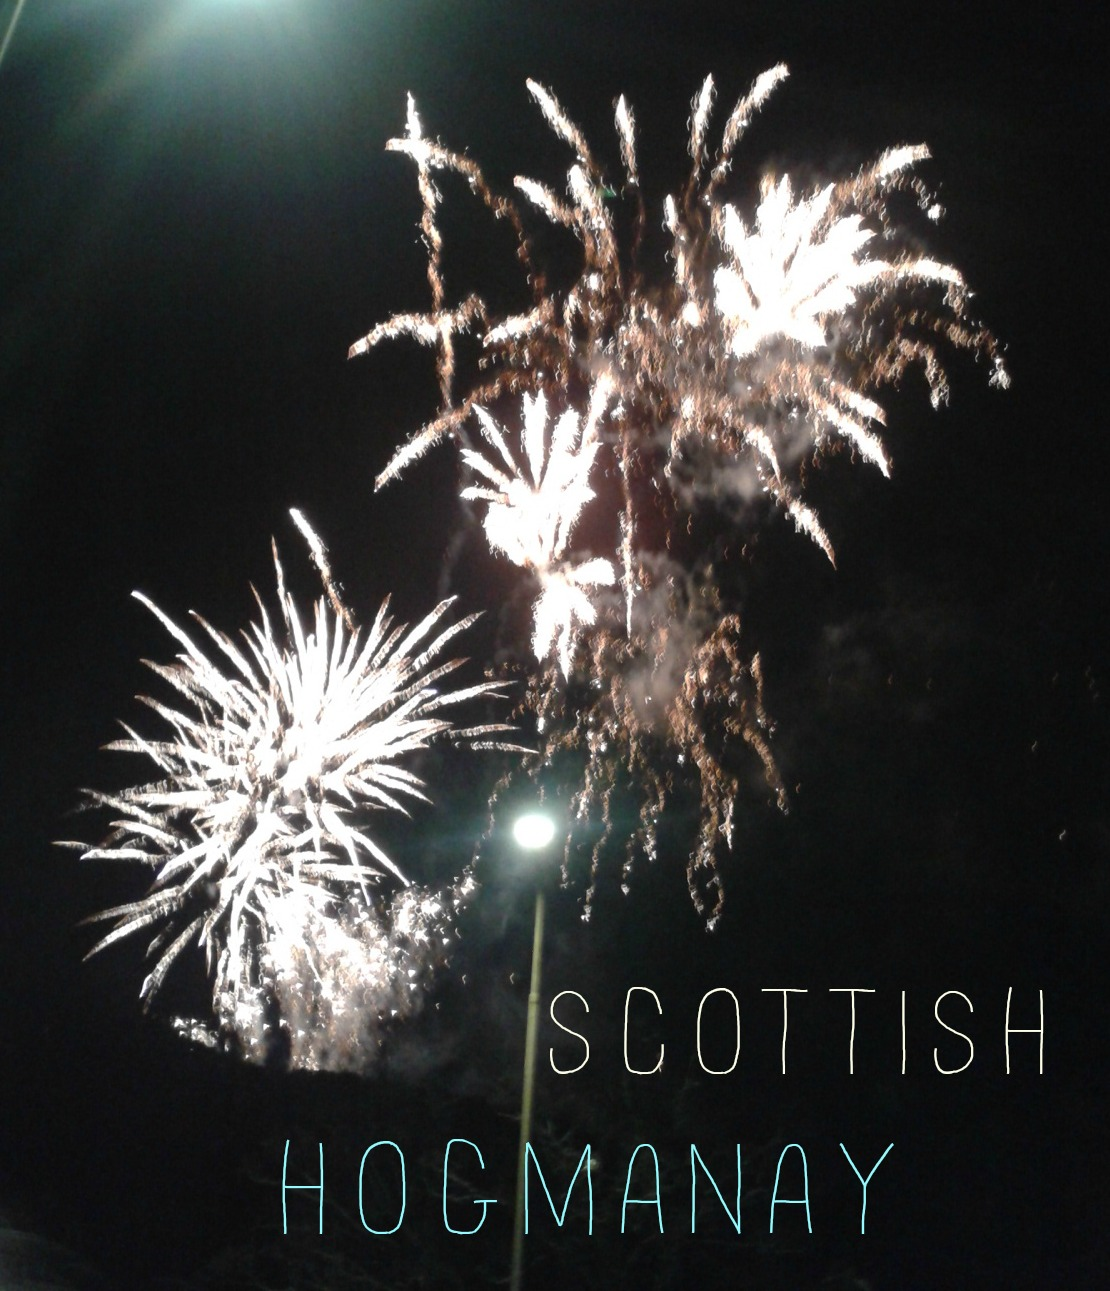 scottish hogmanay